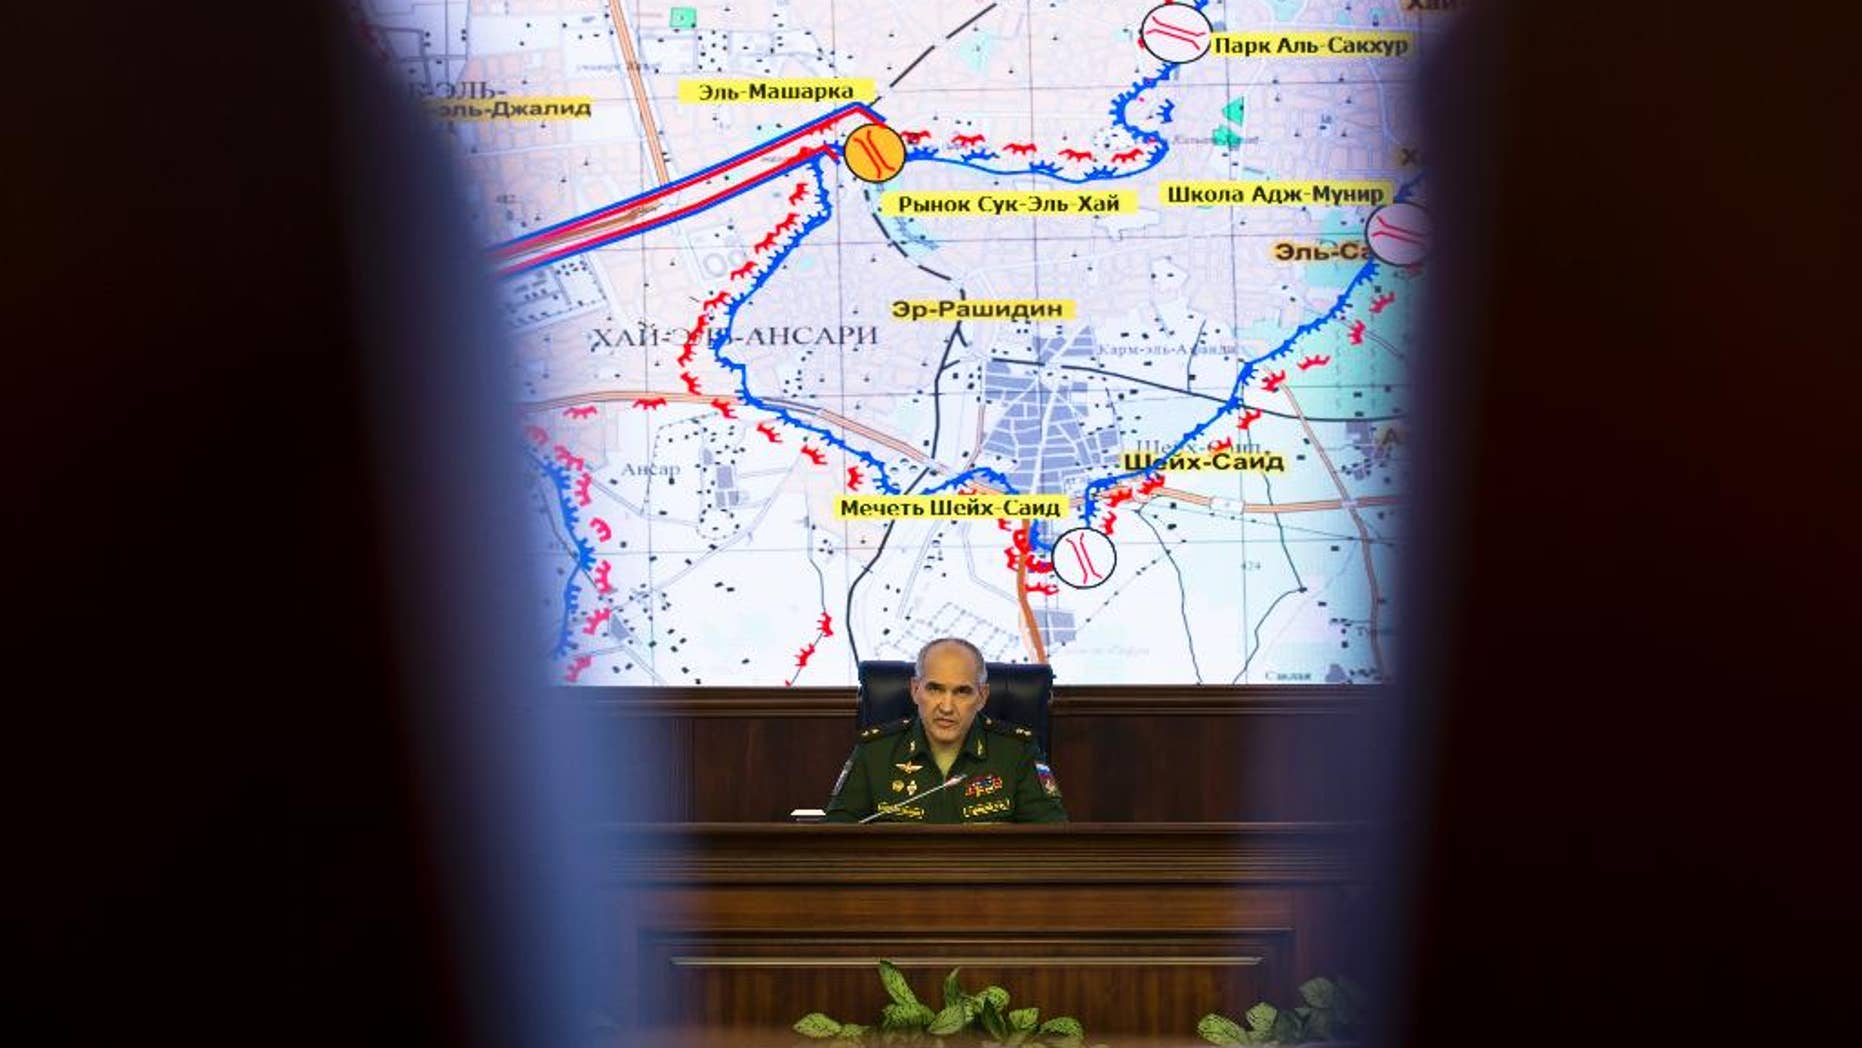 """Lt. Gen. Sergei Rudskoi of the Russian military's General Staff speaks in front of a map of the Aleppo area, at a briefing at the Russian Defense Ministry's headquarters in Moscow, Russia, Wednesday, Oct. 19, 2016. The Russian military says that Russian and Syrian warplanes are staying away from Aleppo a day before a temporary pause in the military push declared by Moscow. Lt. Gen. Sergei Rudskoi said the """"humanitarian pause"""" in Aleppo will last from 8 a.m. to 7 p.m. Thursday, three hours longer than the Russian military initially announced. (AP Photo/Alexander Zemlianichenko)"""